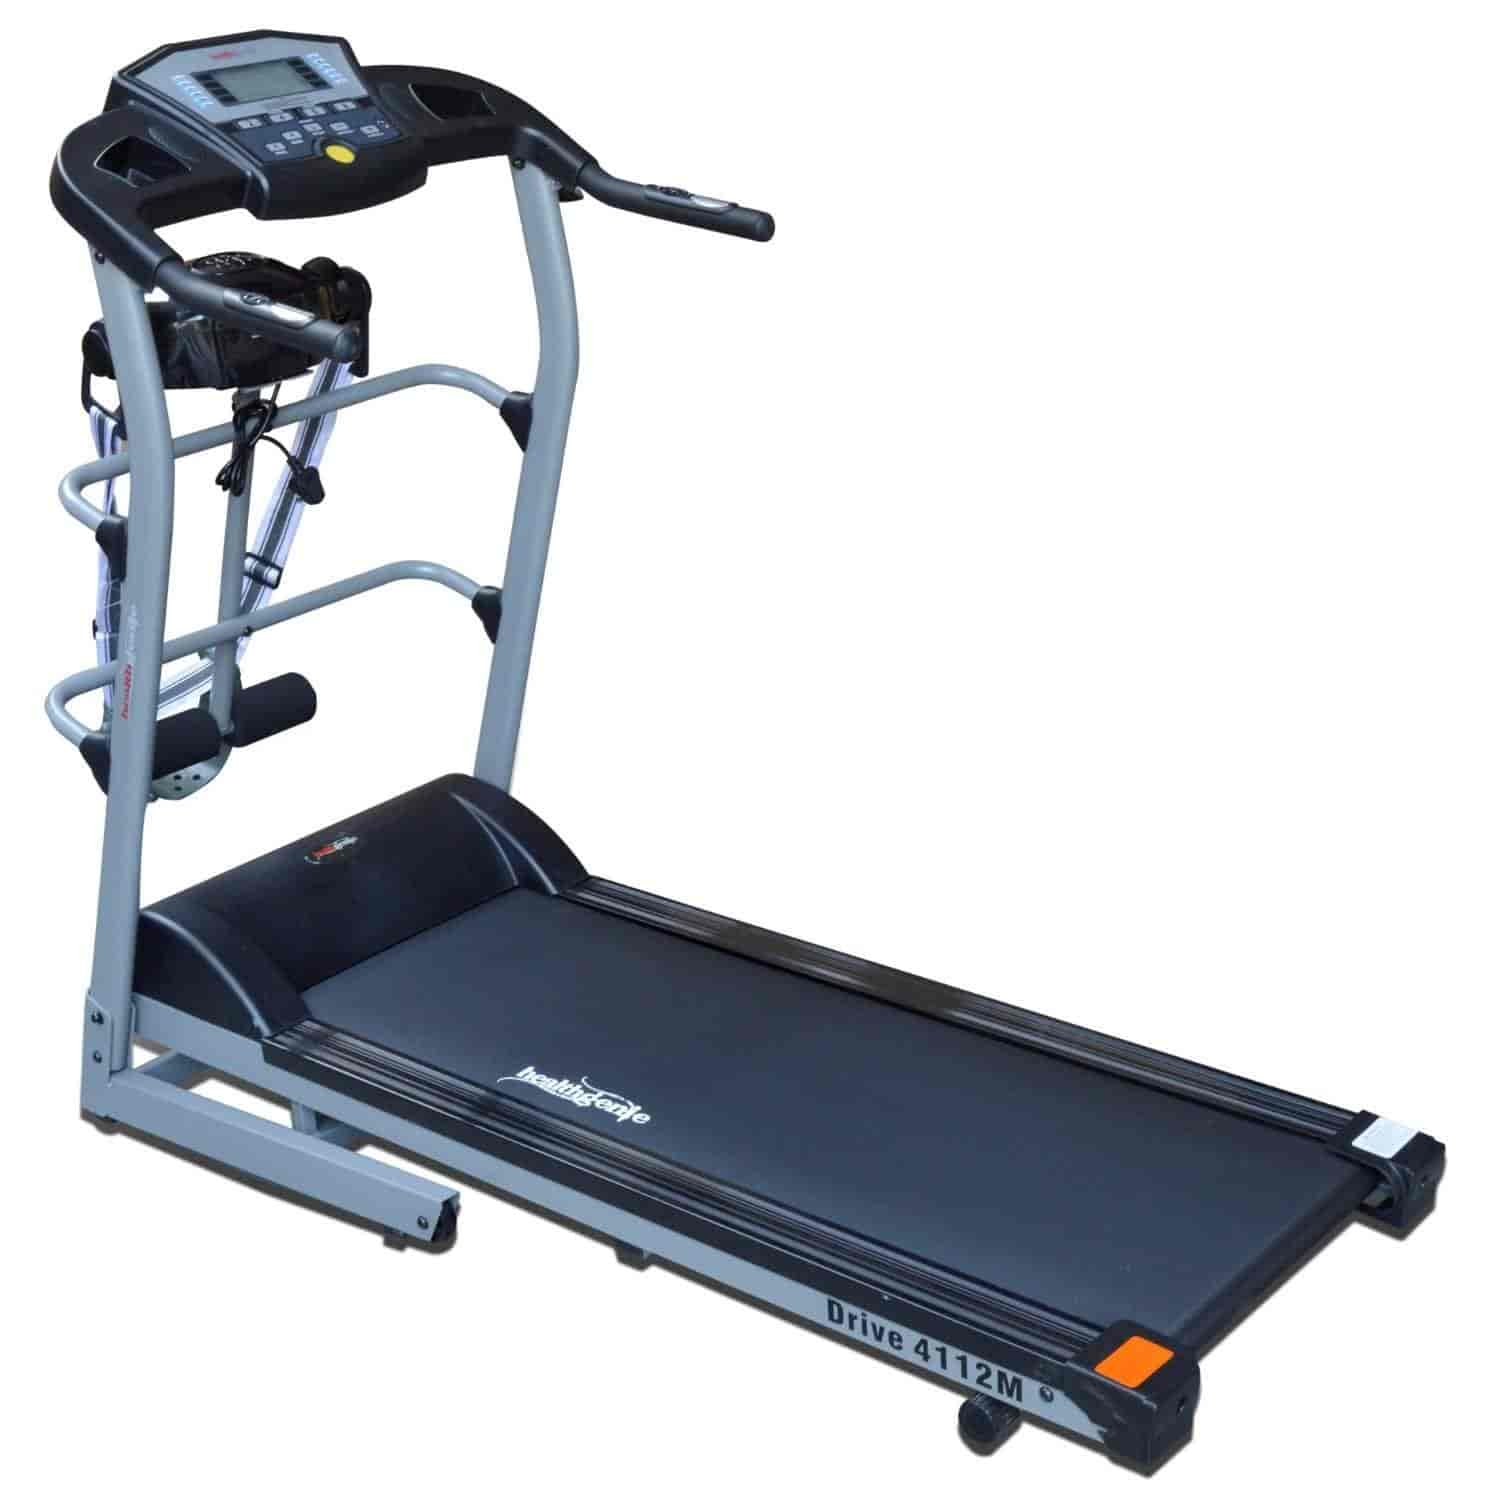 Image result for healthgenie treadmill